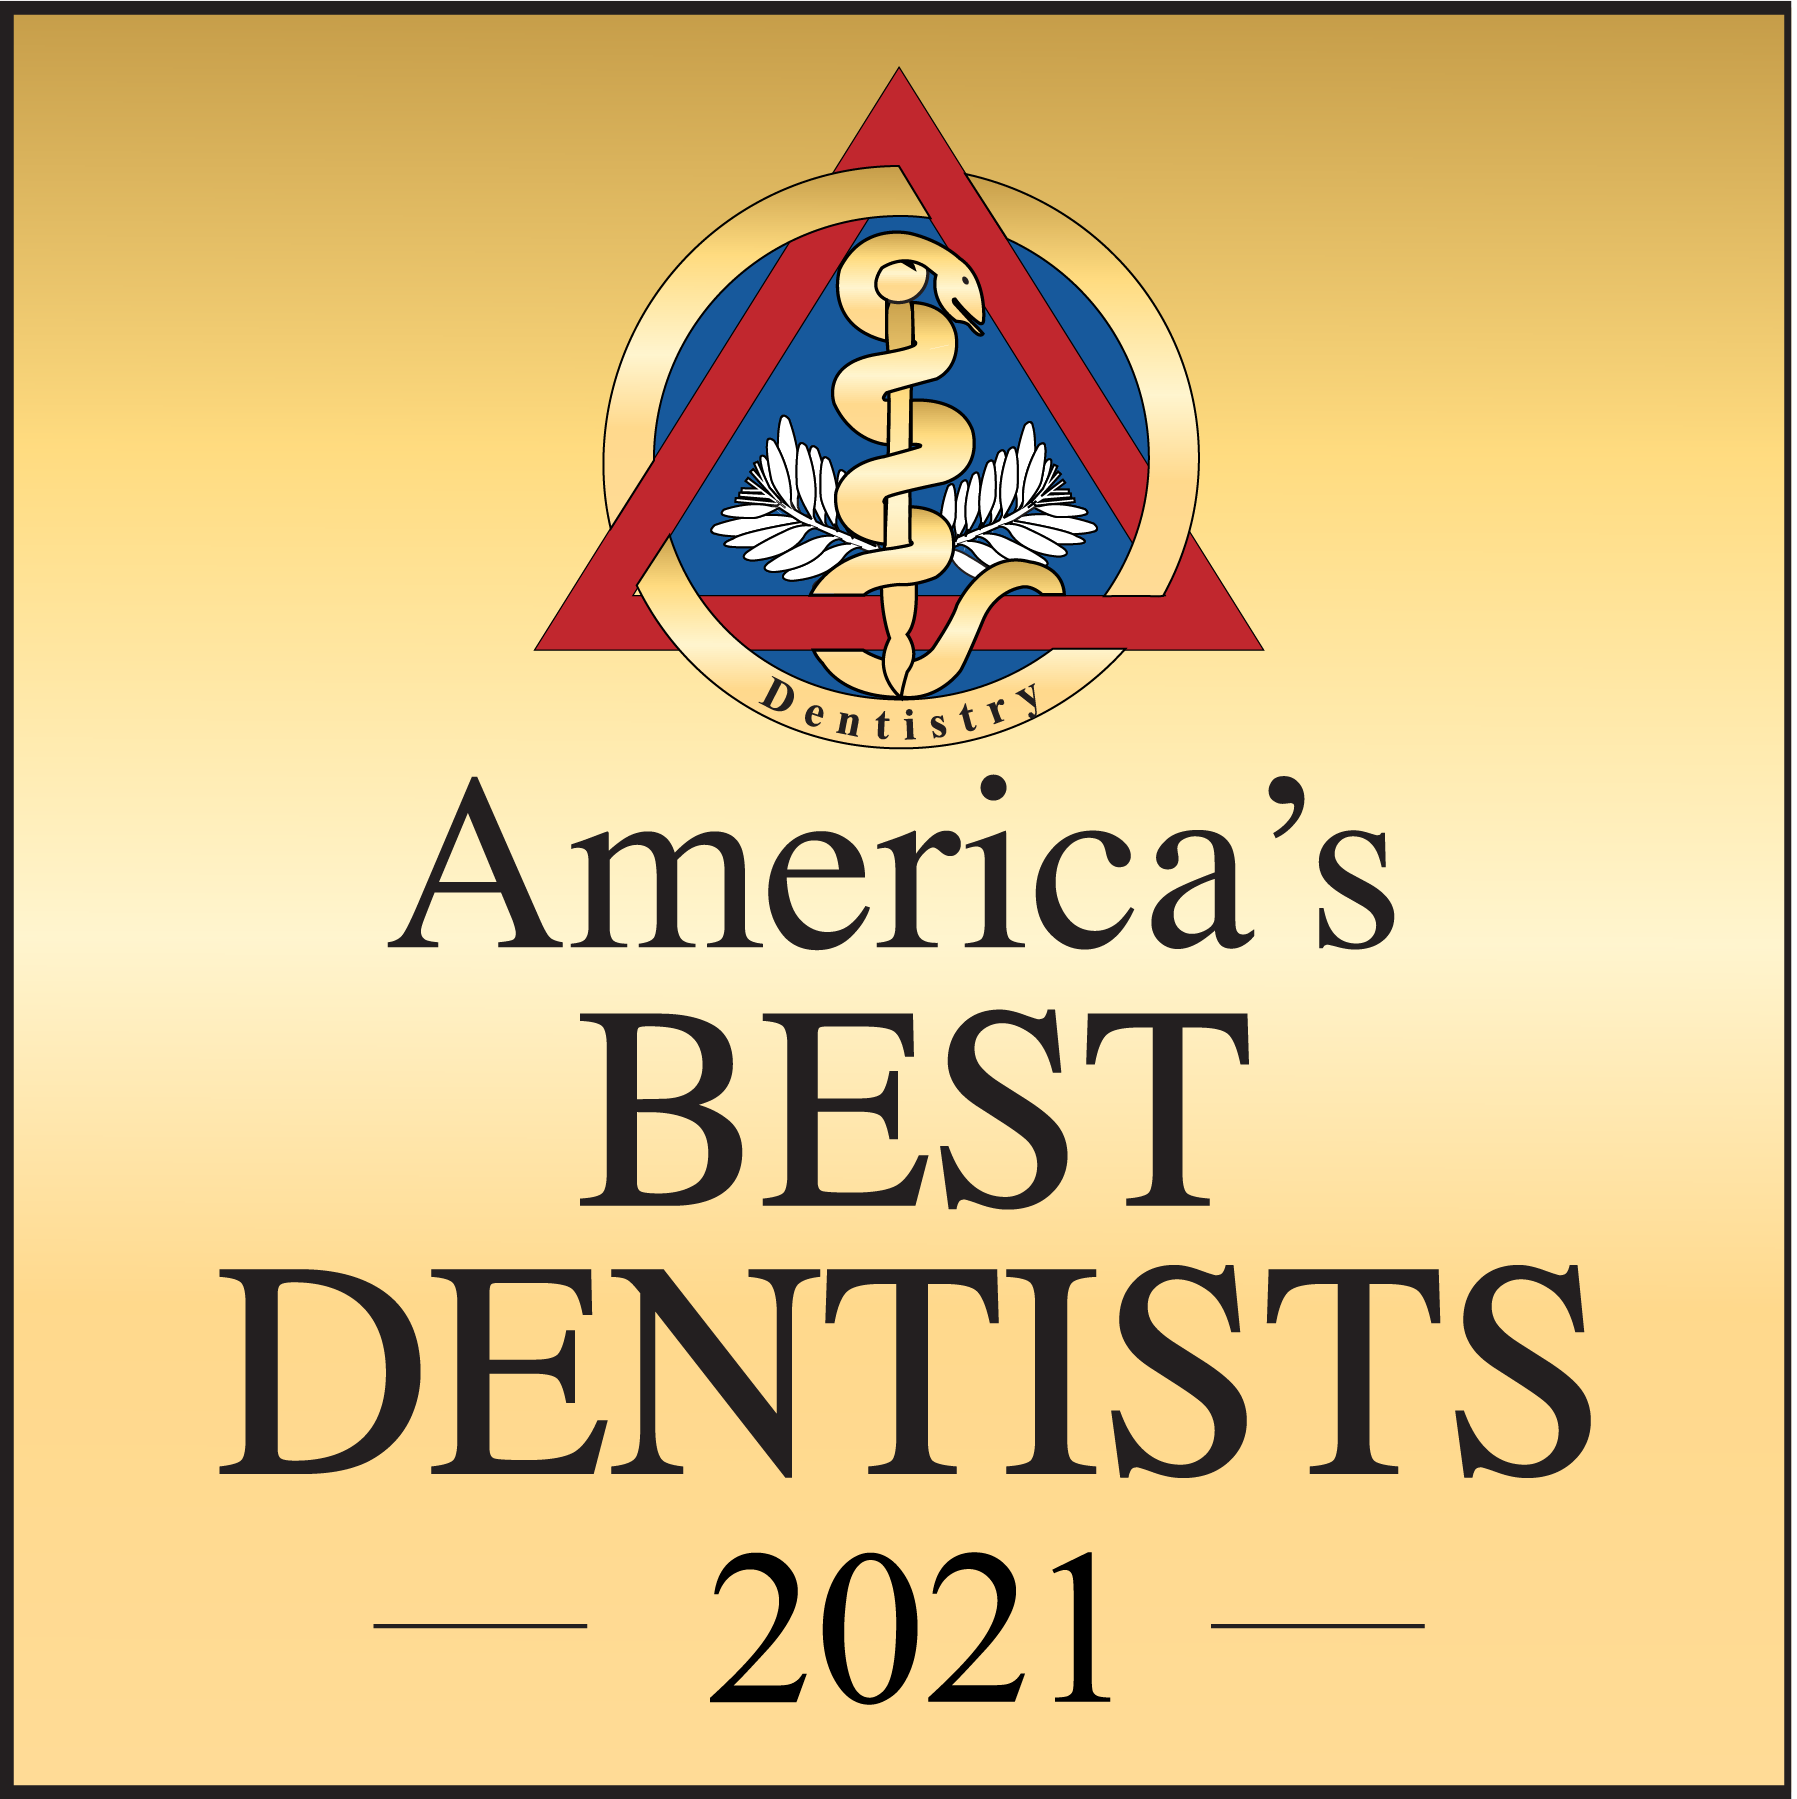 Americas Best Dentists 2021